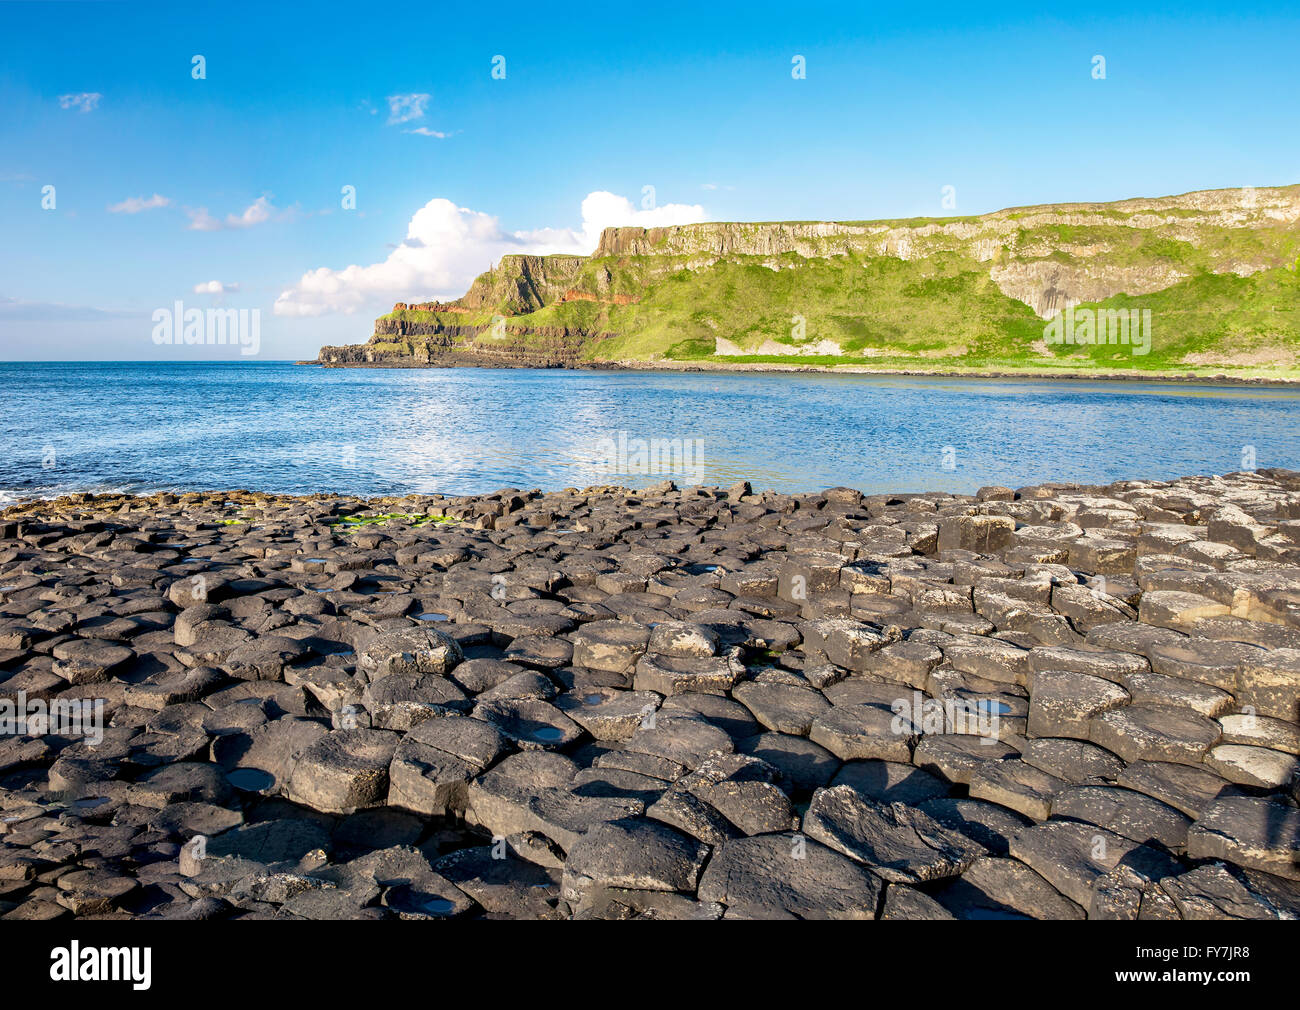 Giants Causeway, unique geological hexagonal formations of volcanic basalt rocks  and cliffs on Atlantic coast in - Stock Image